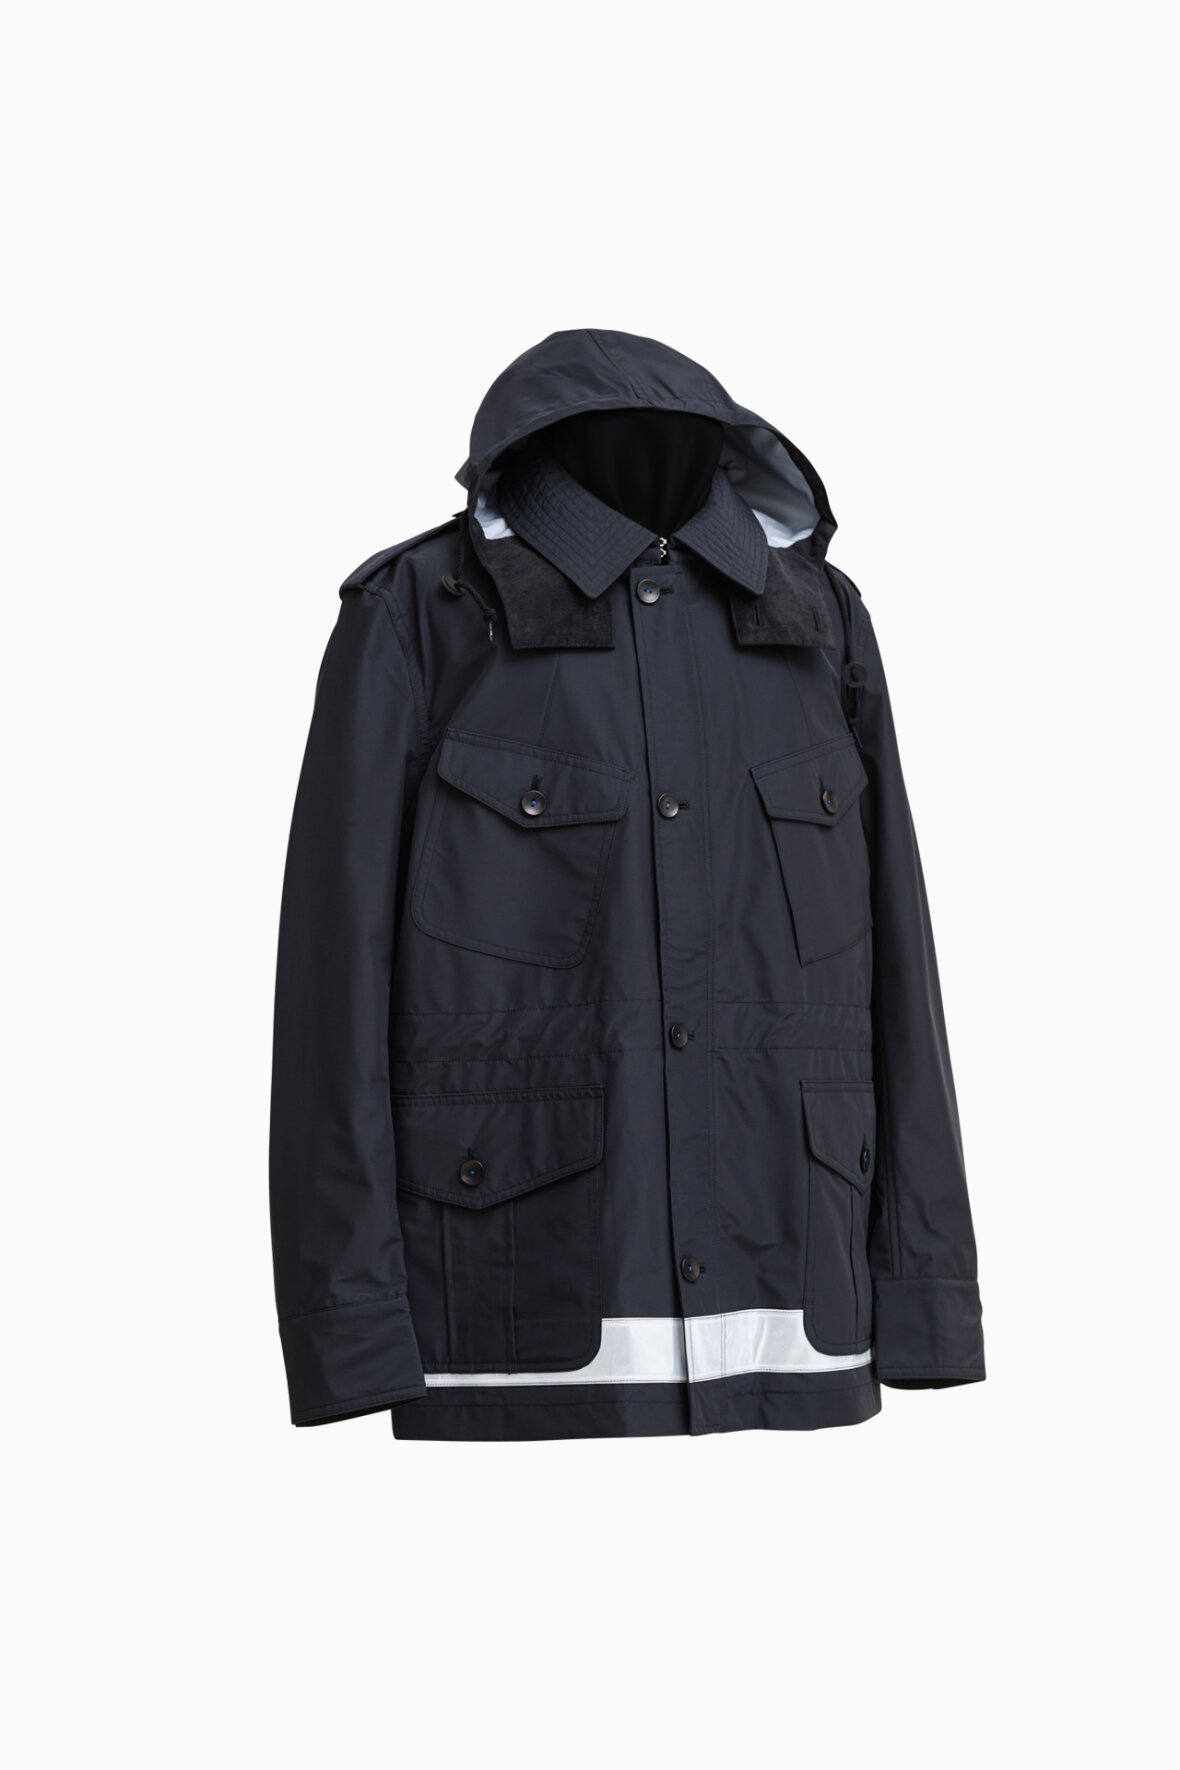 5acfecee4fe Norse Store - Feature: Jackets Autumn/Winter 18